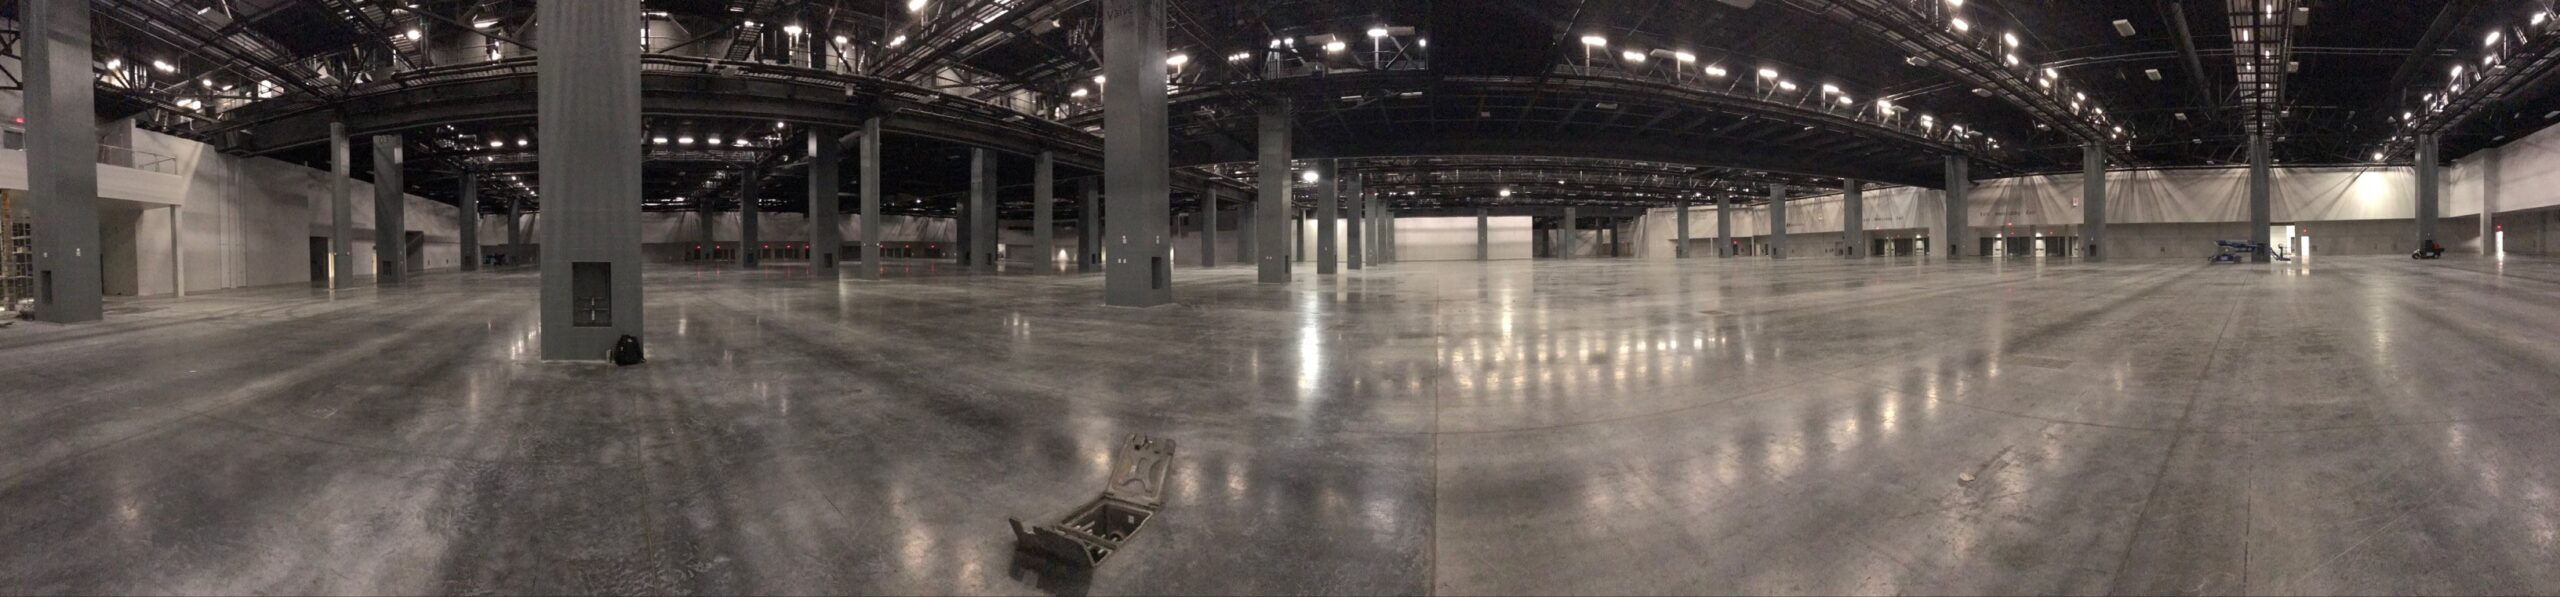 empty convention center